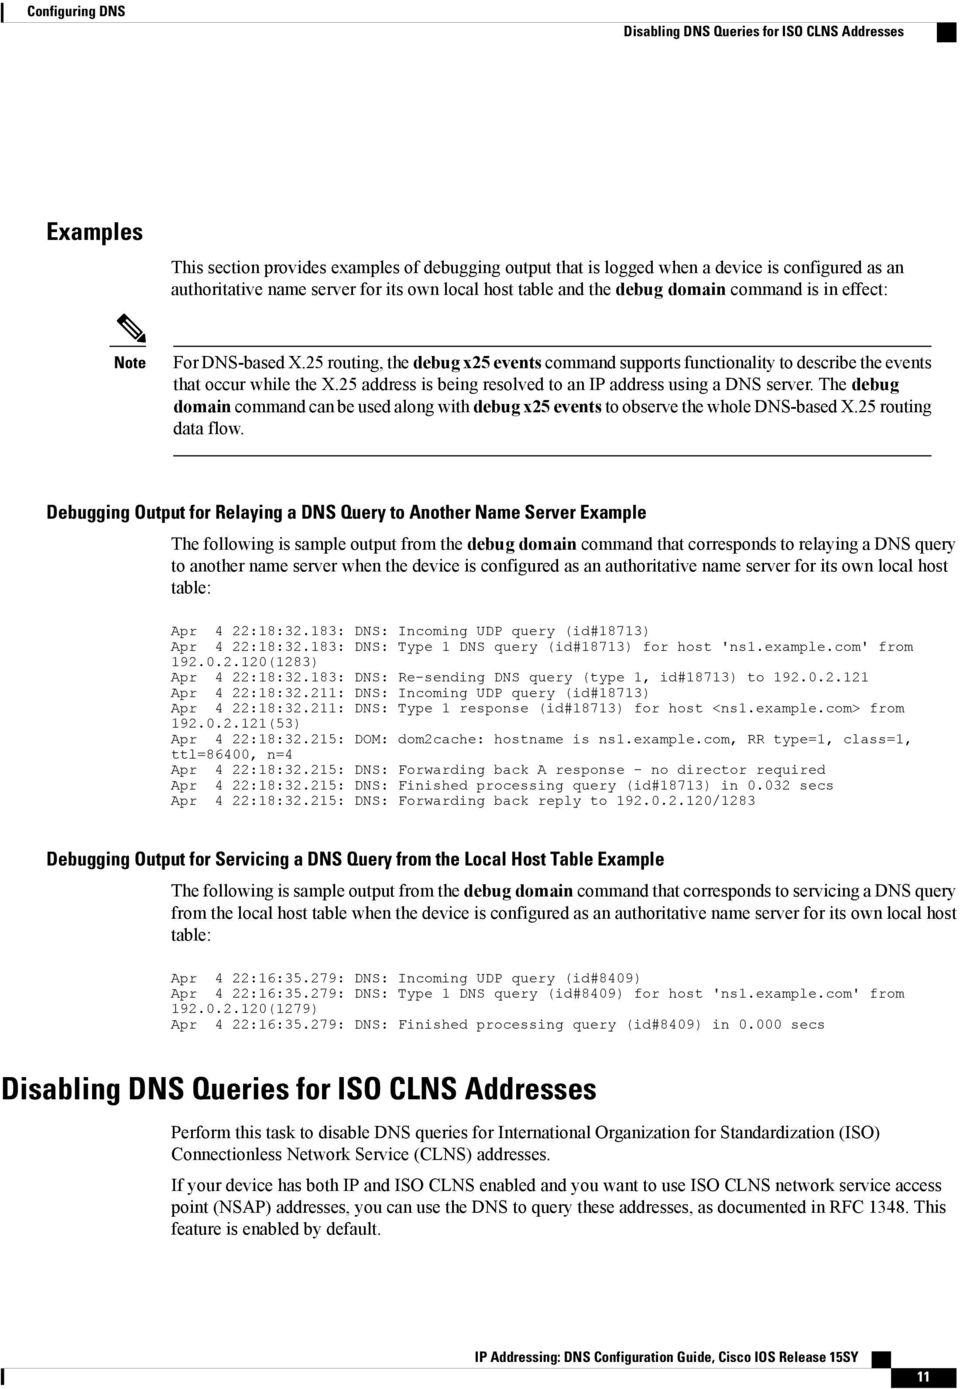 25 address is being resolved to an IP address using a DNS server. The debug domain command can be used along with debug x25 events to observe the whole DNS-based X.25 routing data flow.